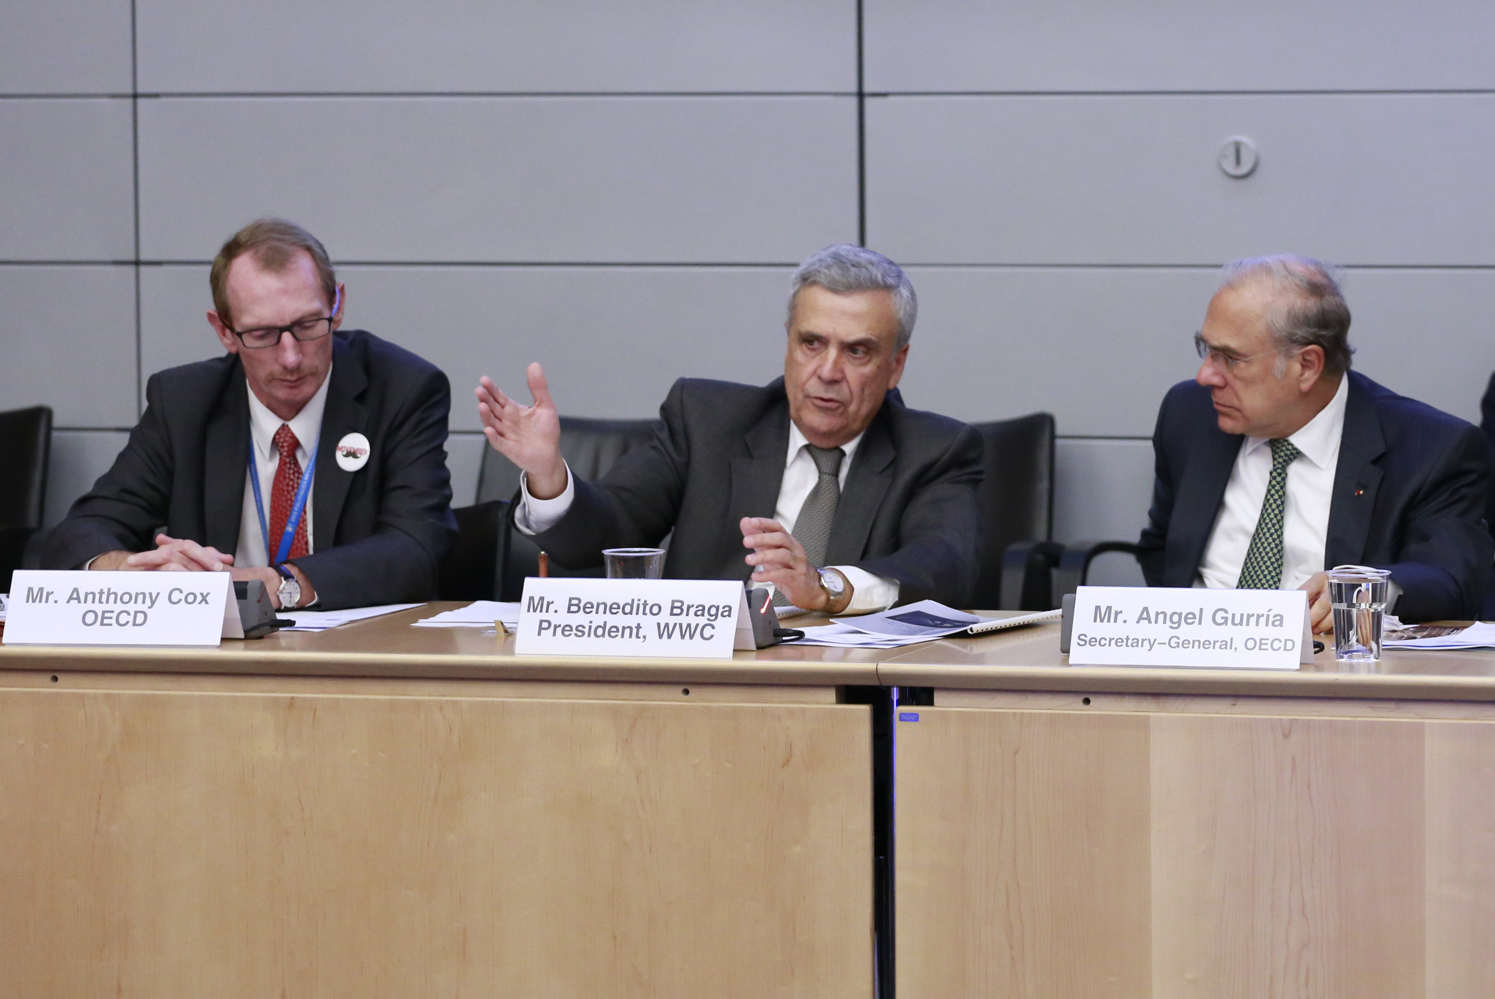 High Level Panel on Infrastructure Financing for a water-secure world, OECD Headquarters, Paris, 26 November 2014